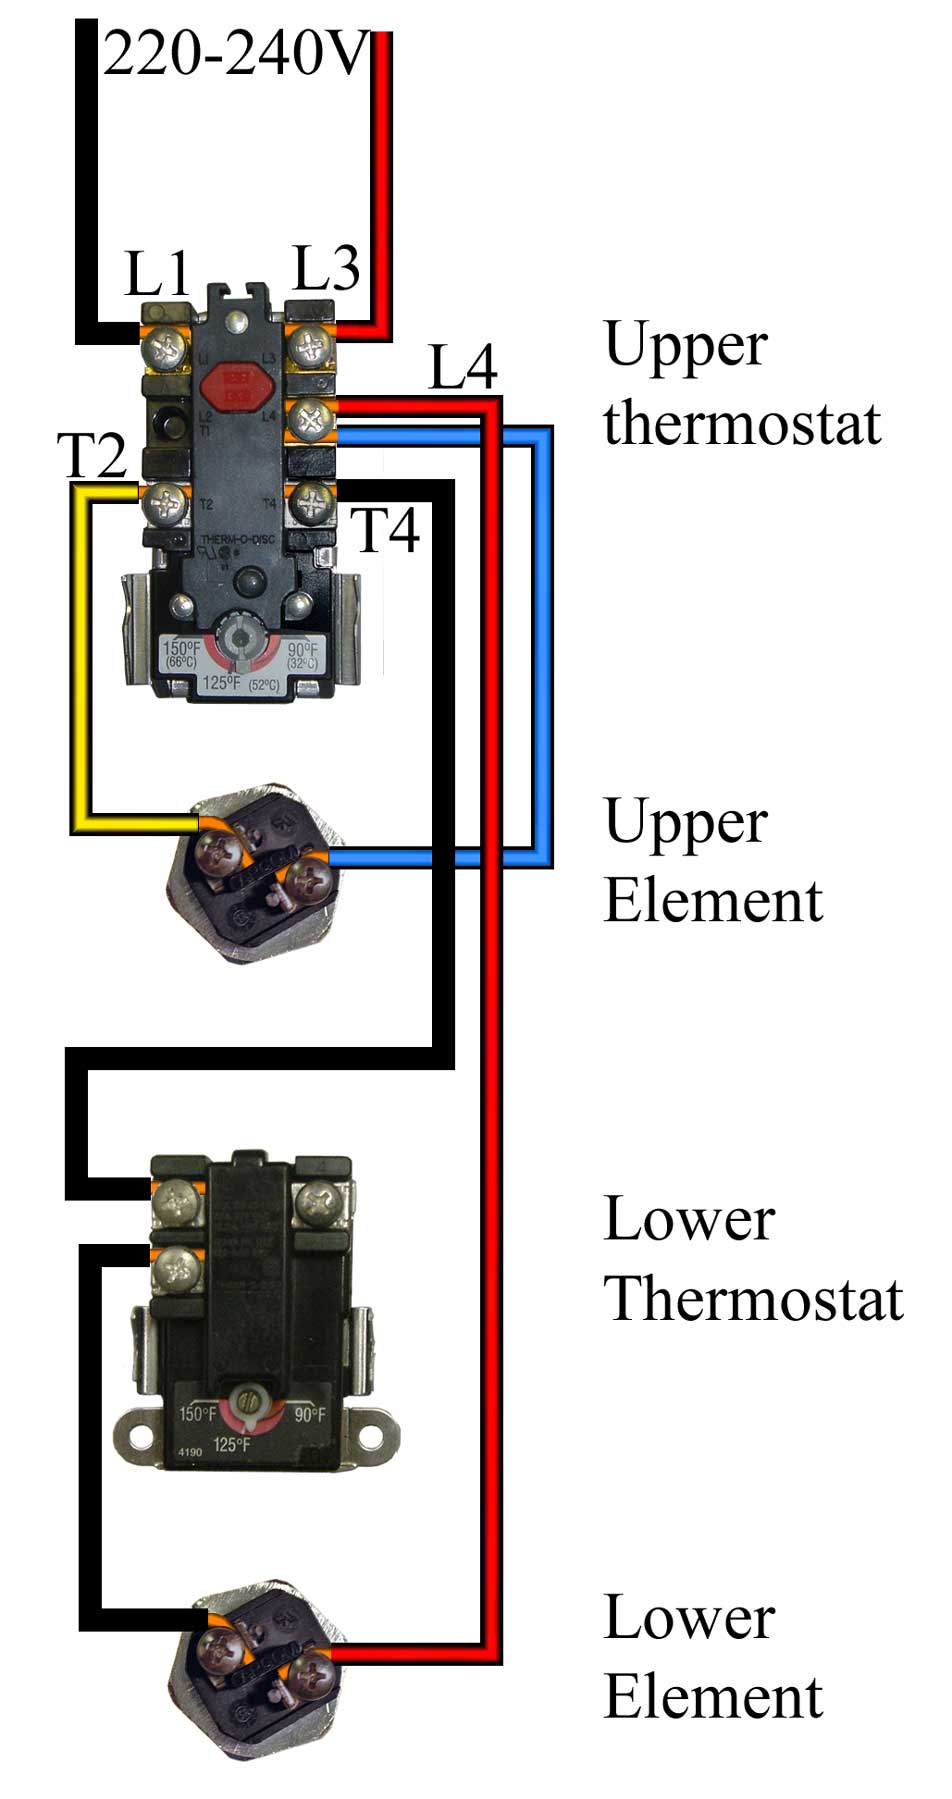 Water heater wiring w num10 how to wire water heater thermostat wiring diagram for rheem hot water heater at virtualis.co